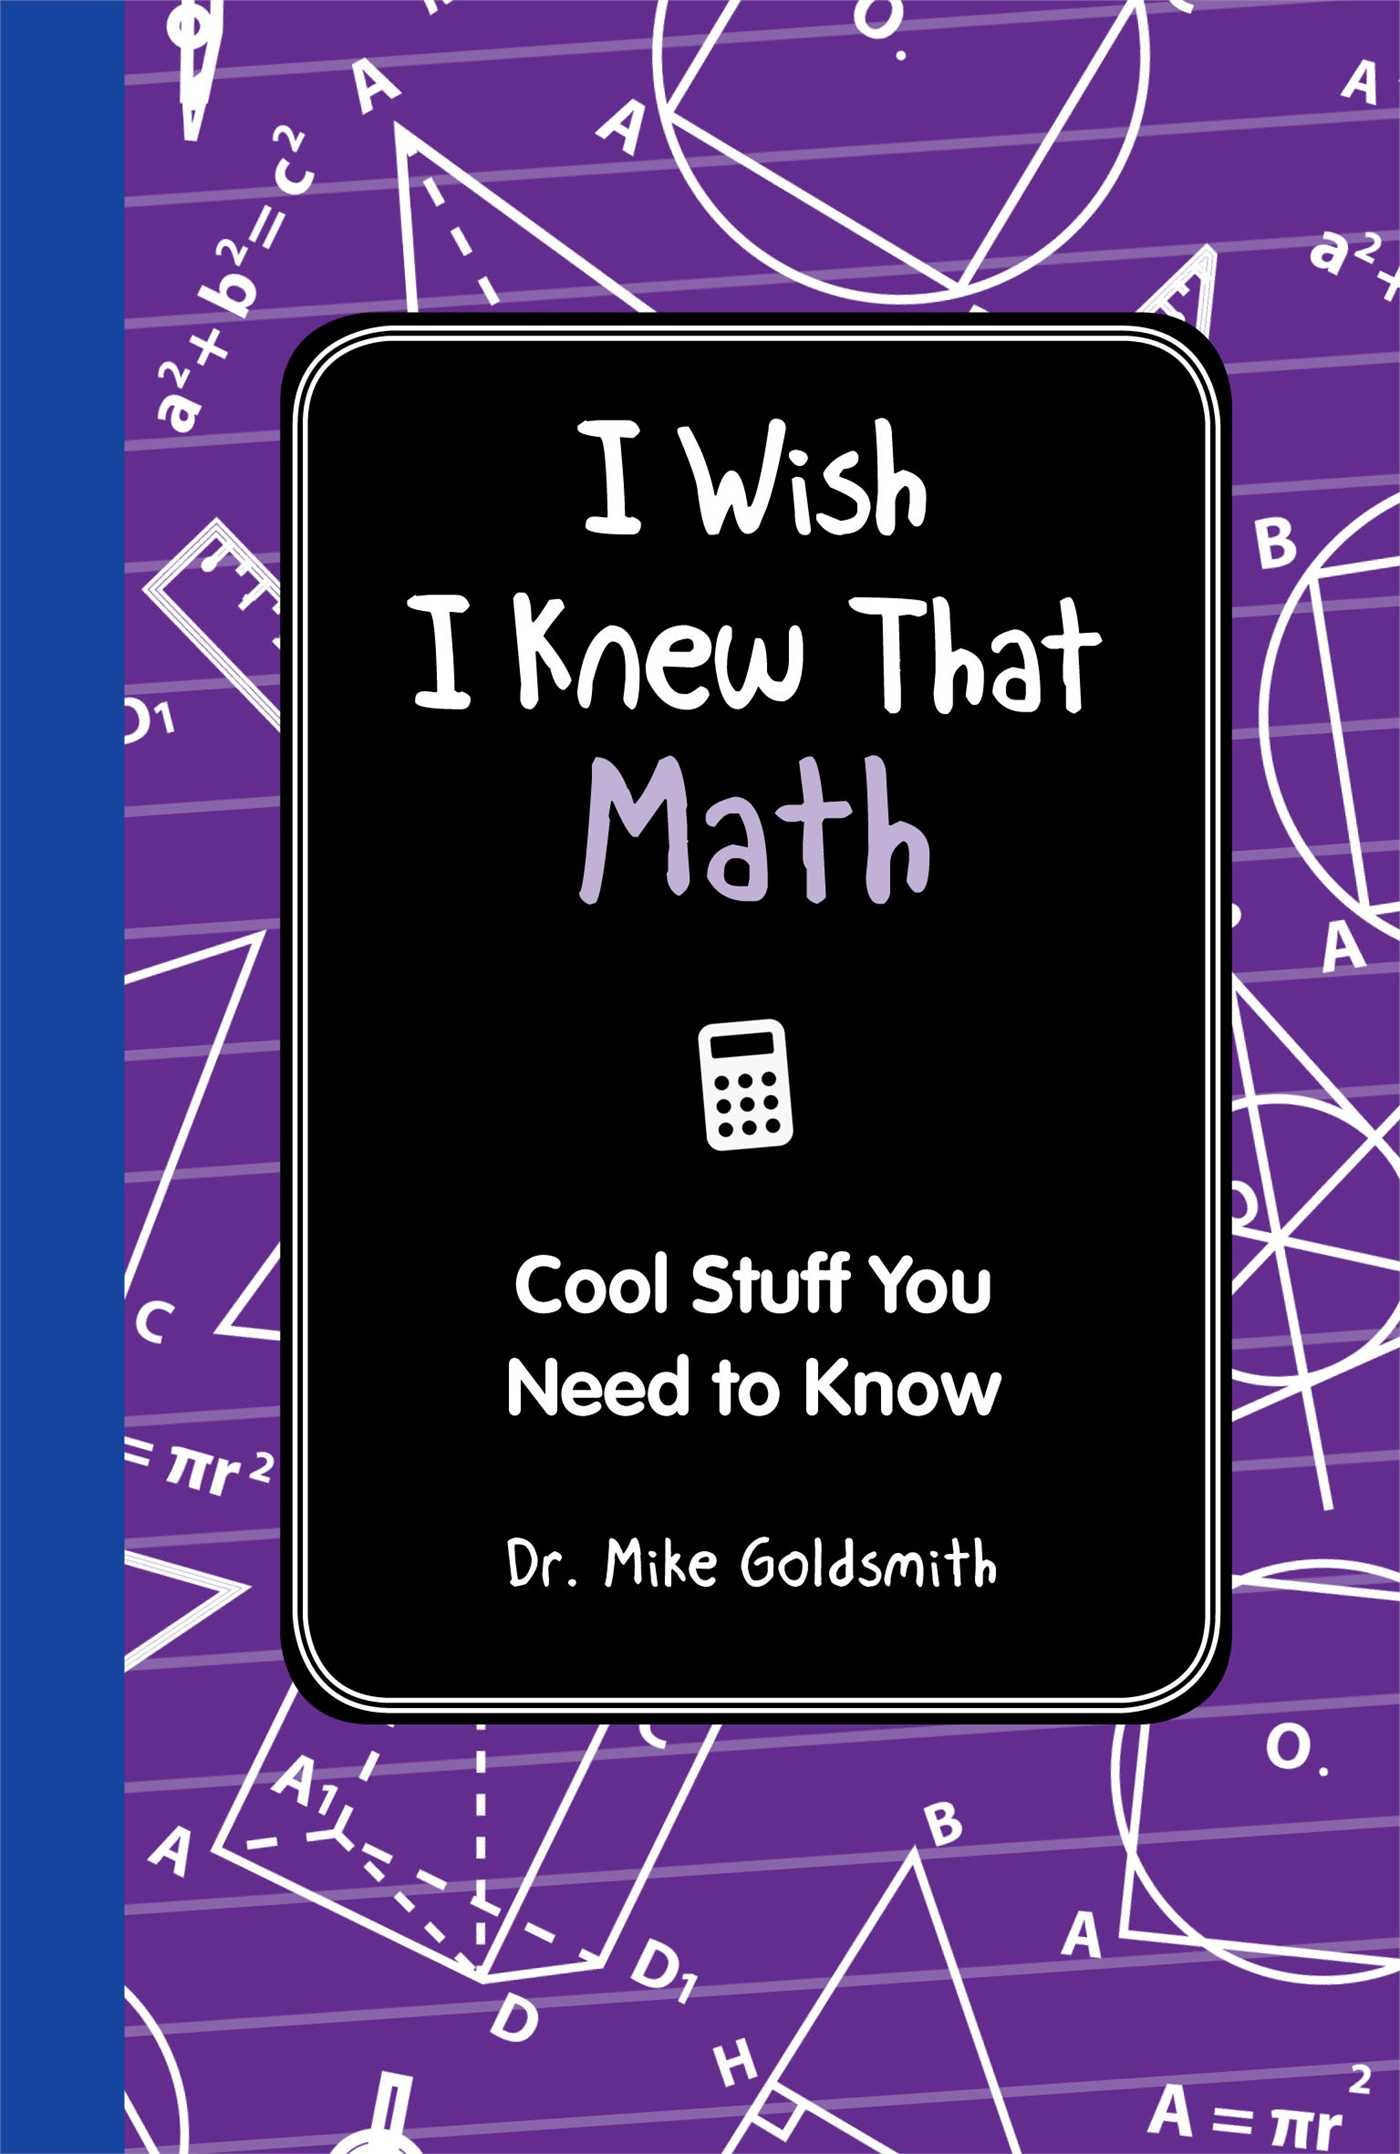 i wish i knew that math cool stuff you need to know dr michael